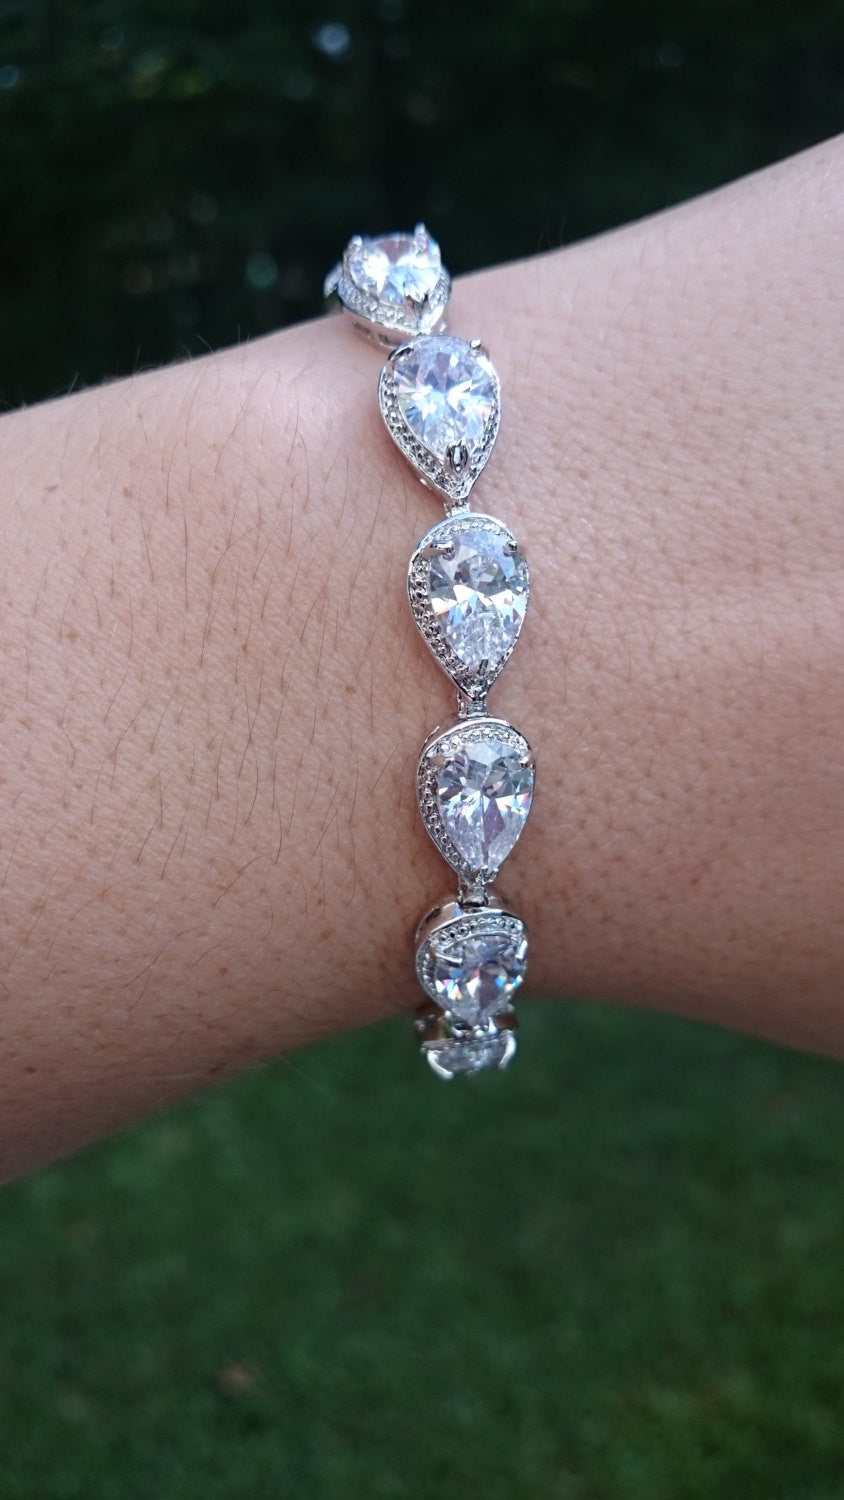 Bridal bracelet, wedding bracelet, cz bracelet, cubic zirconia bracelet, bridal jewelry, Teardrop, wedding accessories, pear cz bracelet